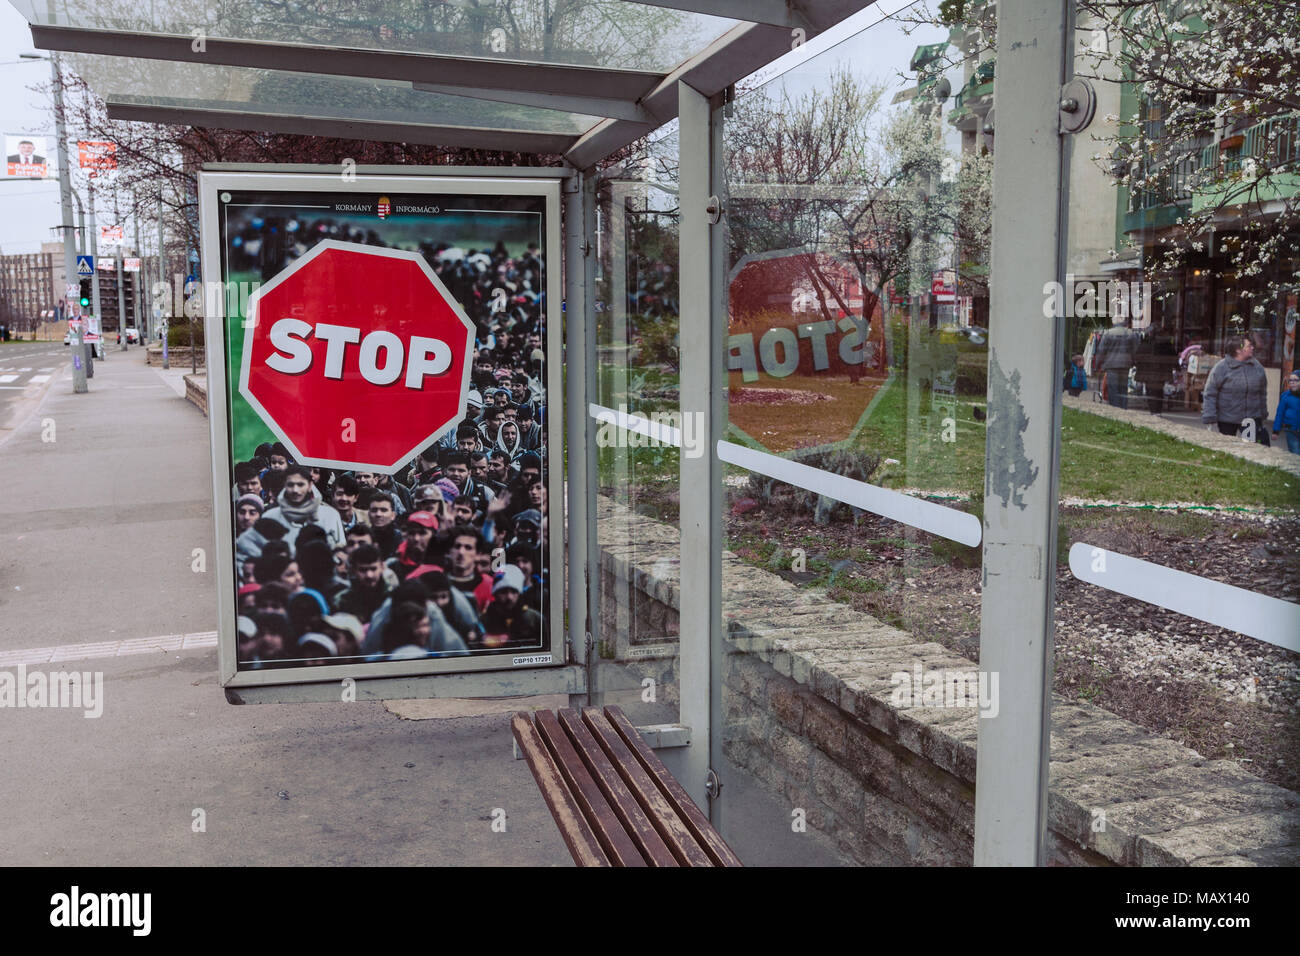 Budapest, HUNGARY - April 4, 2018: Hungarian government billboard anti-immigration campaign, say STOP the refugees immigration. - Stock Image